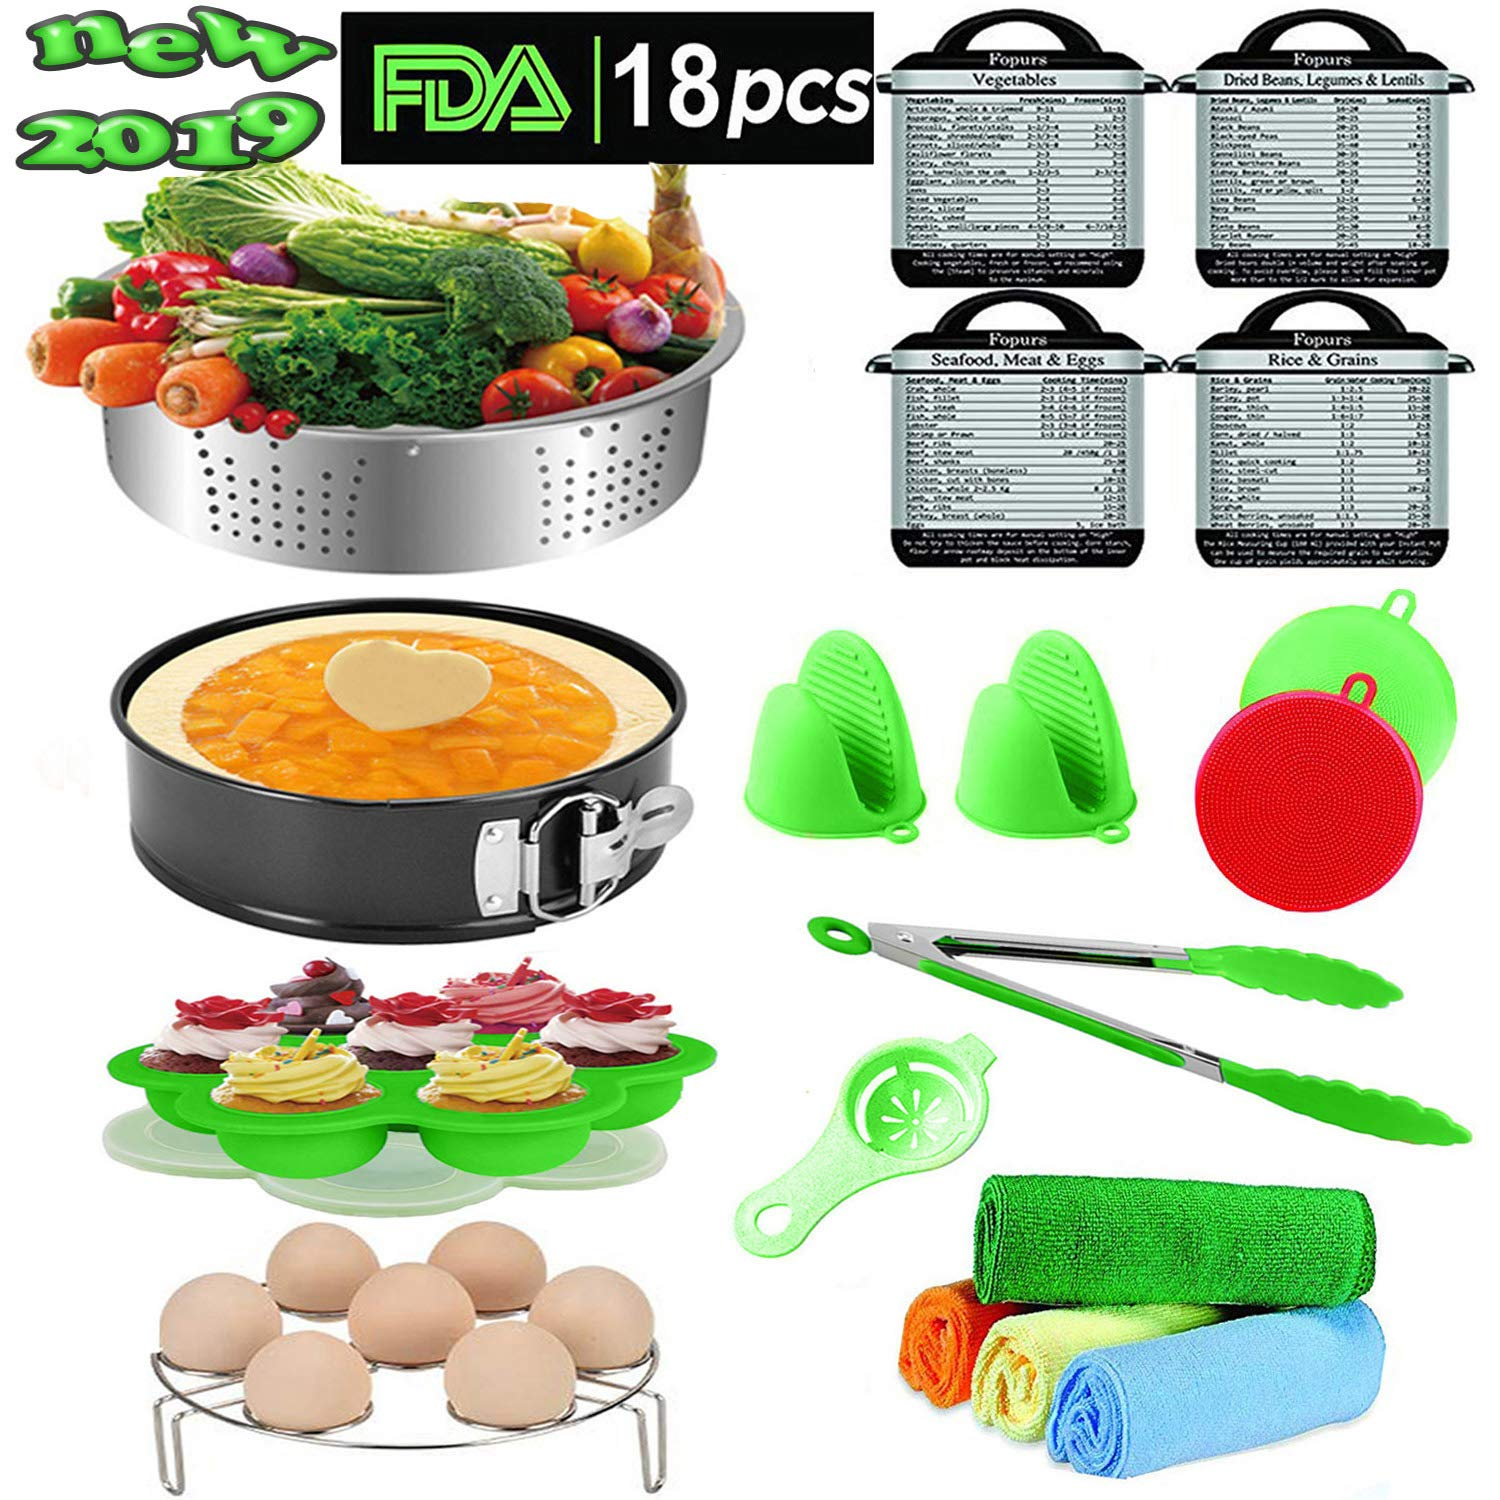 18 Piece Pressure Cooker Accessories fits Instant pot Compatible with 6,8 qt instapot,Steamer Basket,Egg beater, Cake Pan separator,Magnets Oven Mitts Cleaning cloth Tong Egg Bites Mold Egg Rack